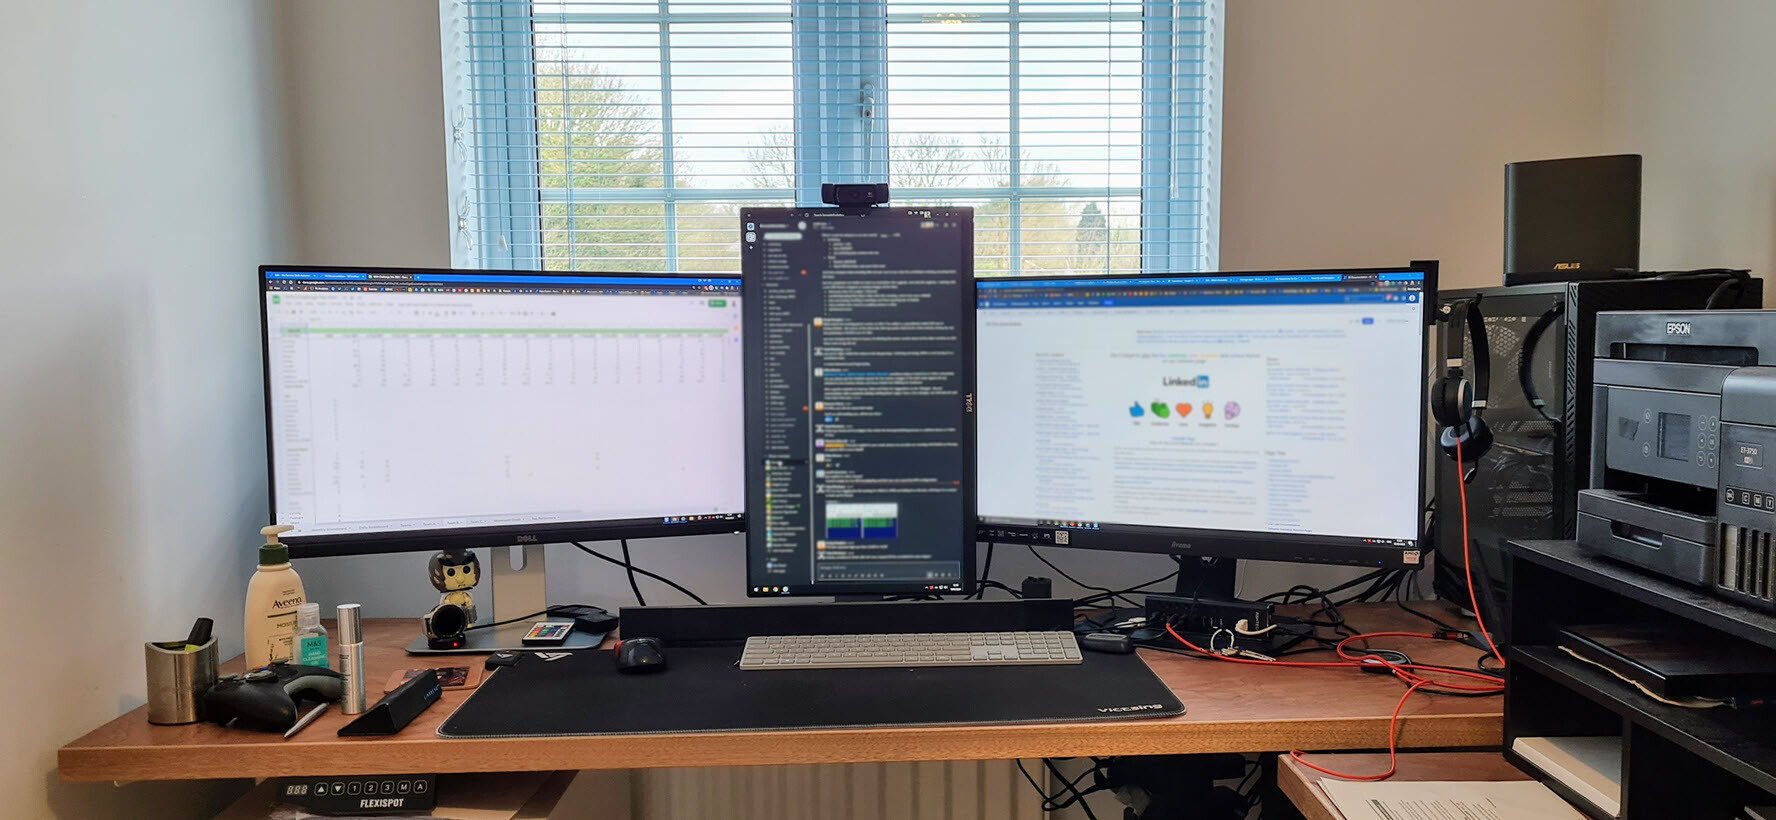 Three LCD monitors are better than two